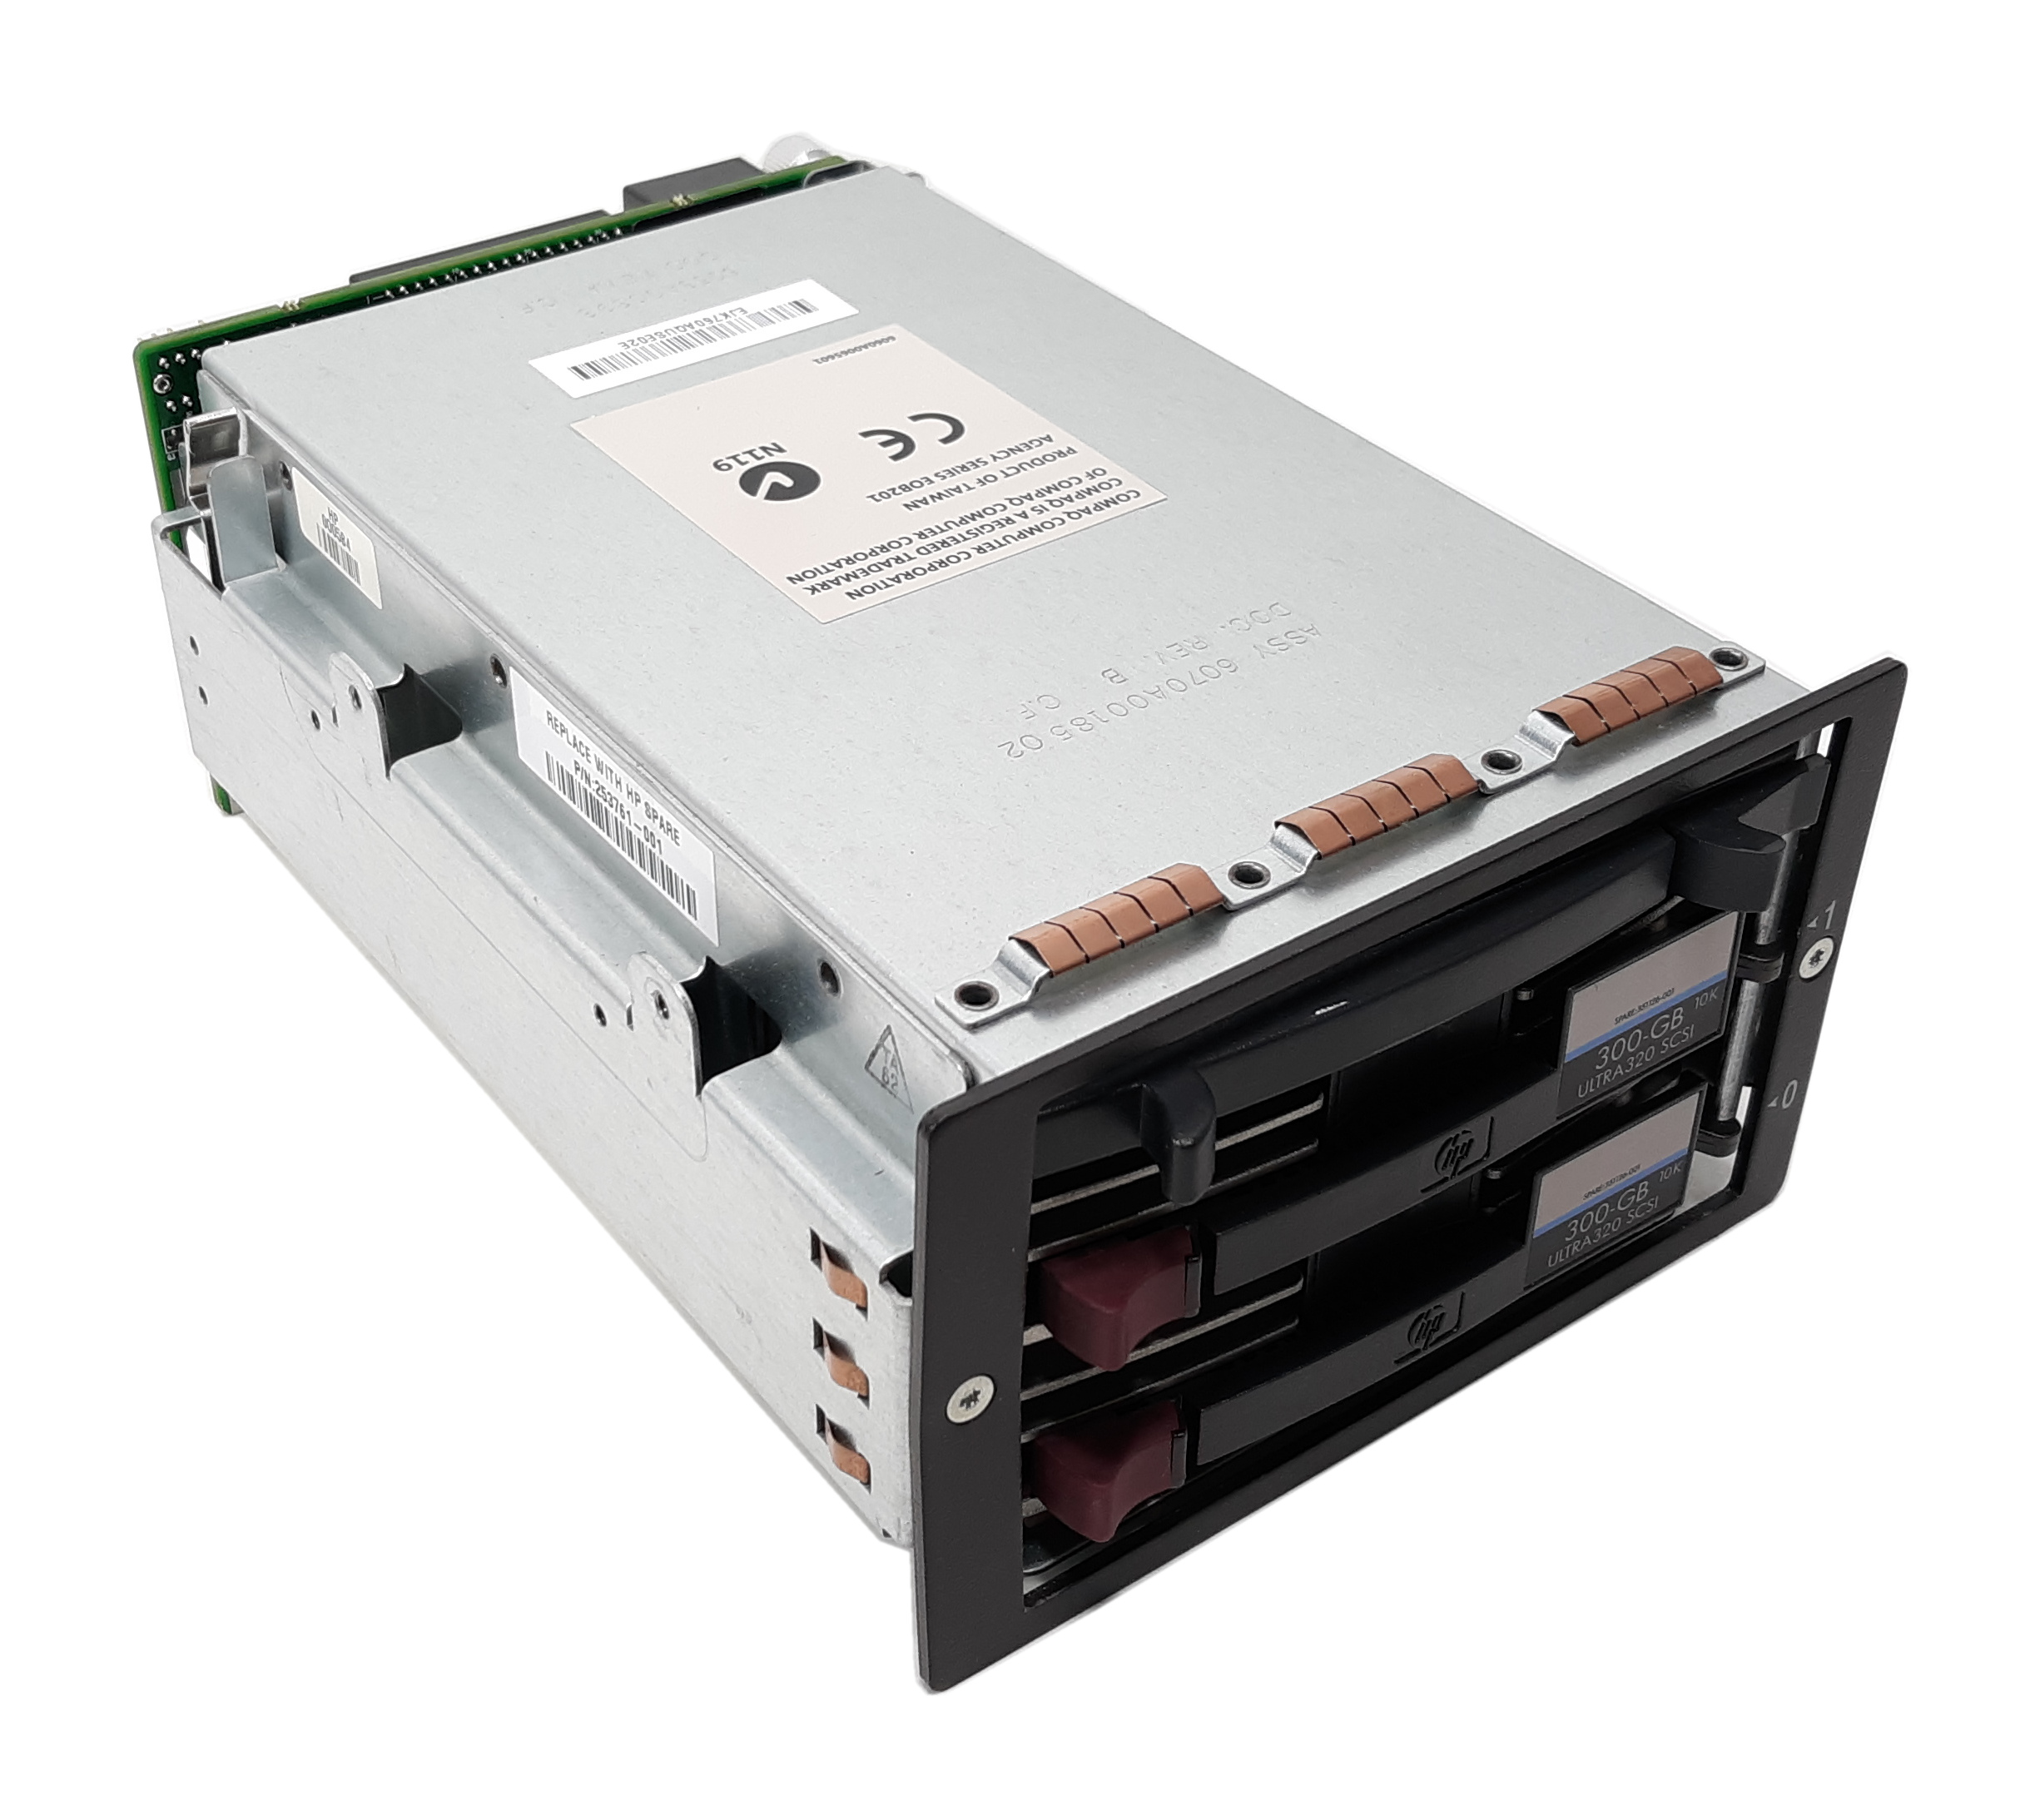 HP SCSI Drive Cage 2-bay Hot Plug Wide U2 with 258051-001 253761-001 351126-001